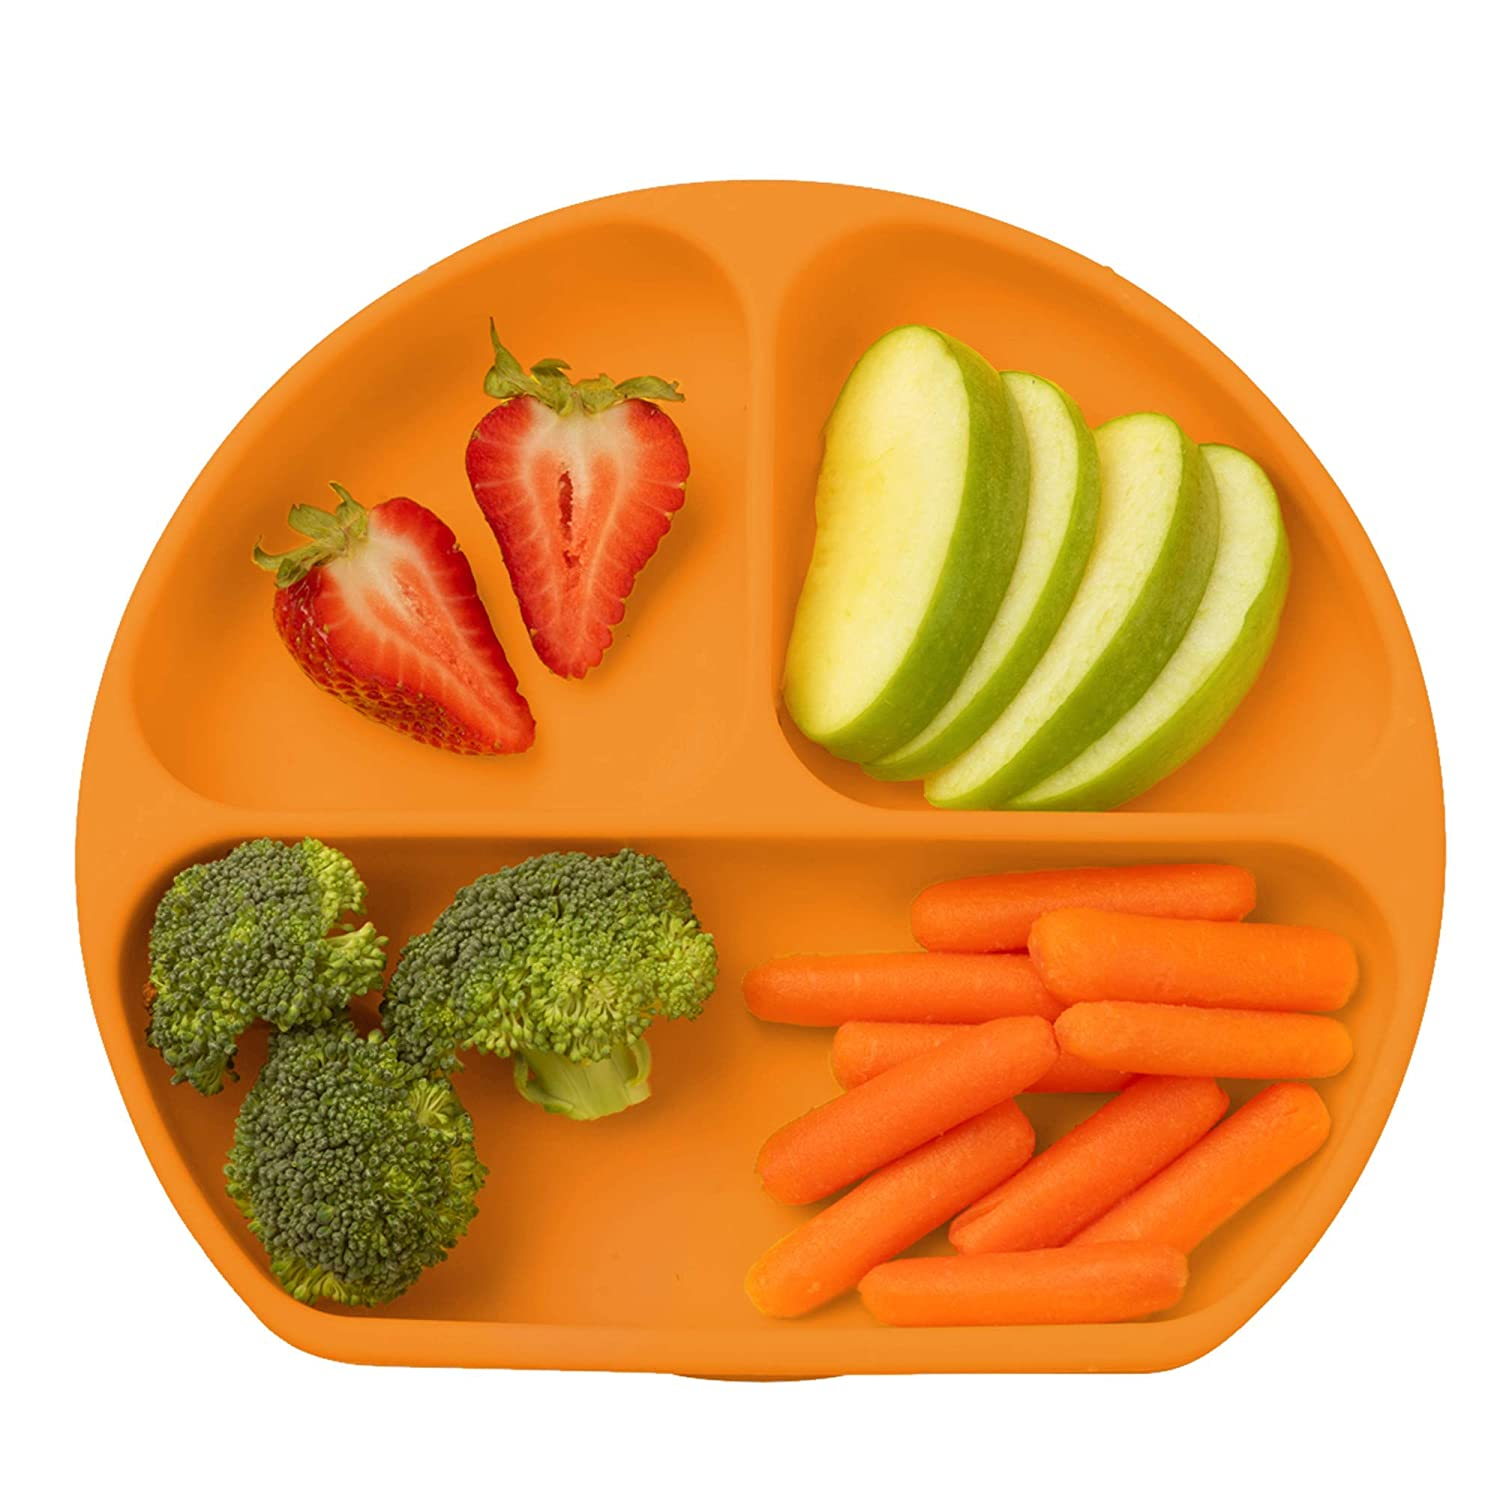 Table-Tot 3-Compartment Plate for Kids, Baby-Safe Silicone, Suction Plates for Toddlers by Juliaire (Orange)